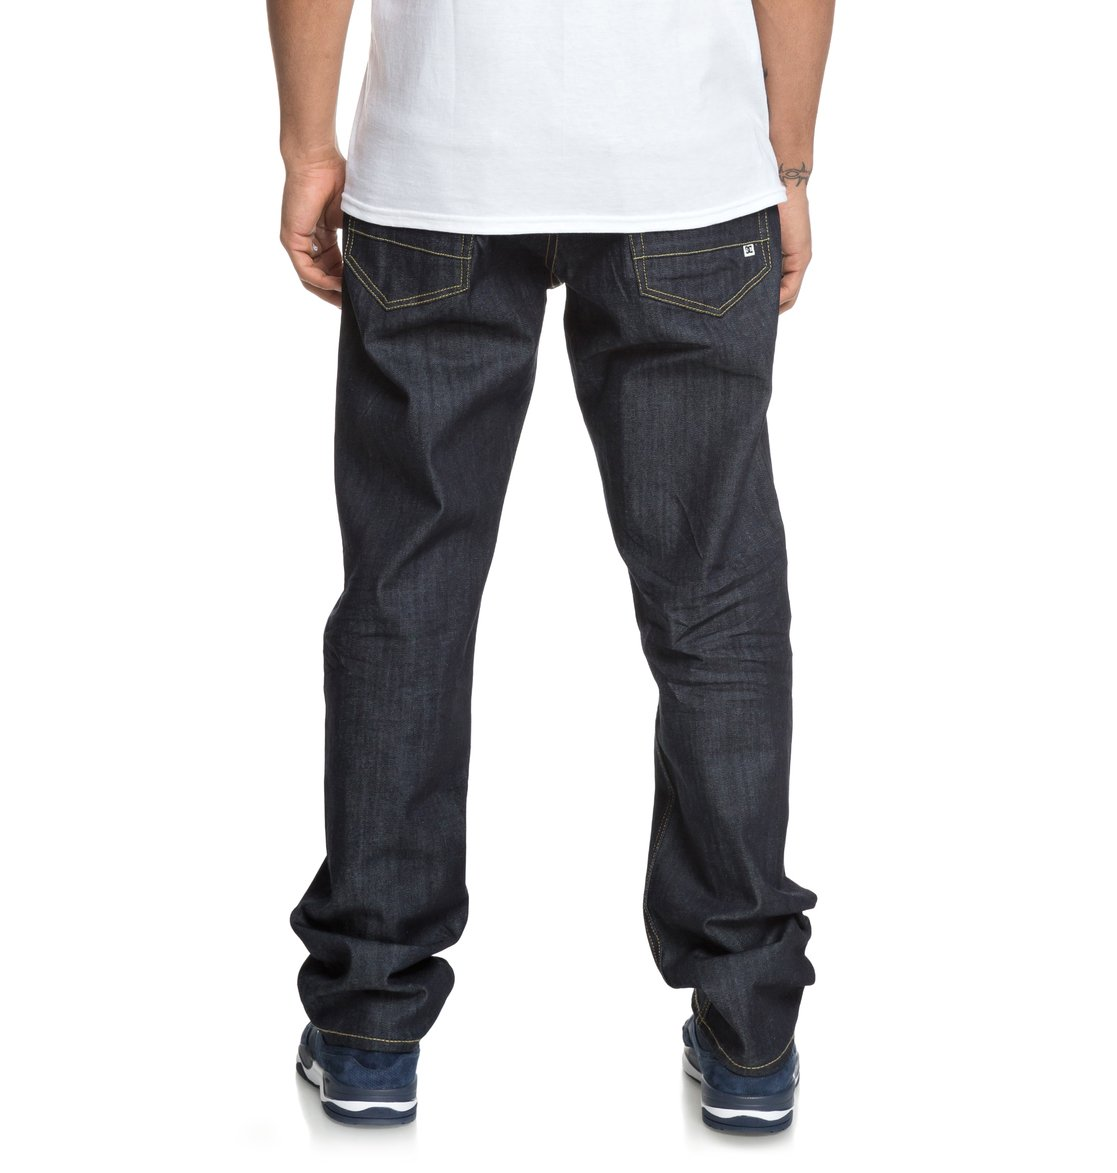 worker relaxed fit jeans for men edydp03378 dc shoes